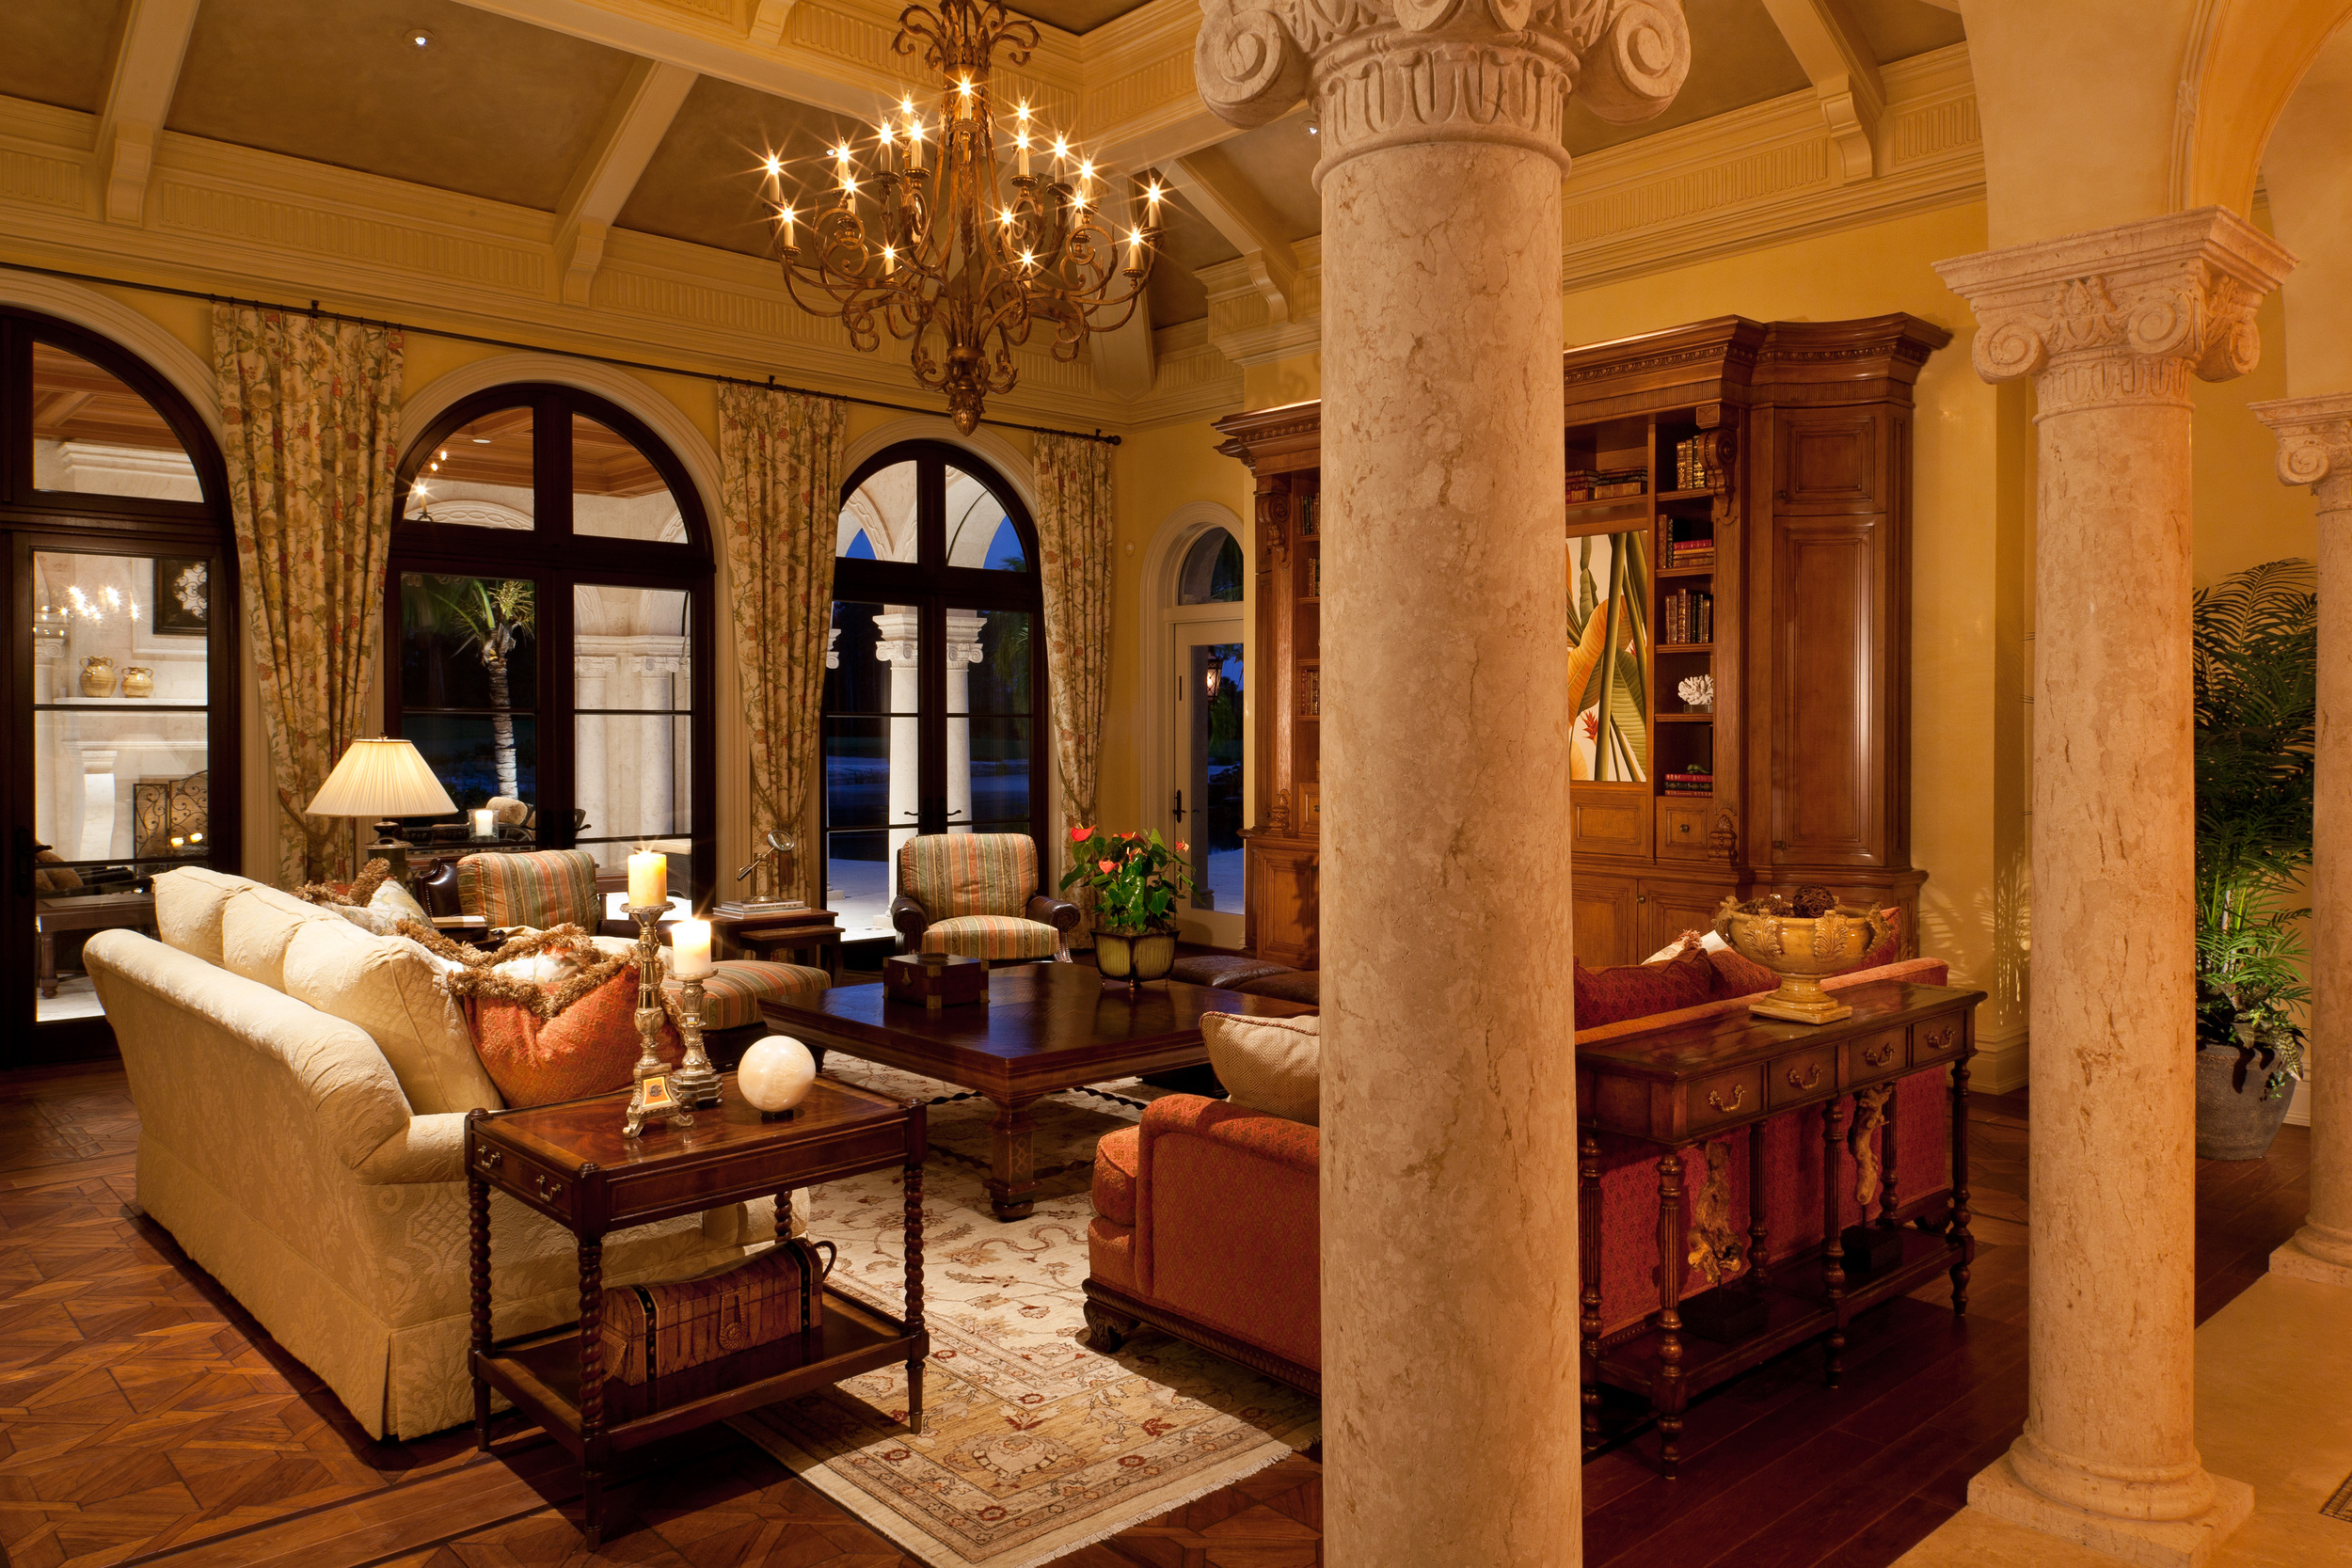 Opening onto the lanai, the family room of this lovely Florida home also connects to dining room across the elegant colonnade of solid carved Syrian stone. The columns and the intricate ceiling structure were all carefully planned and detailed. So, too, was the massive 12 foot tall wall unit, which was executed in select hard white maple finished with multiple glazes that create its warm character.